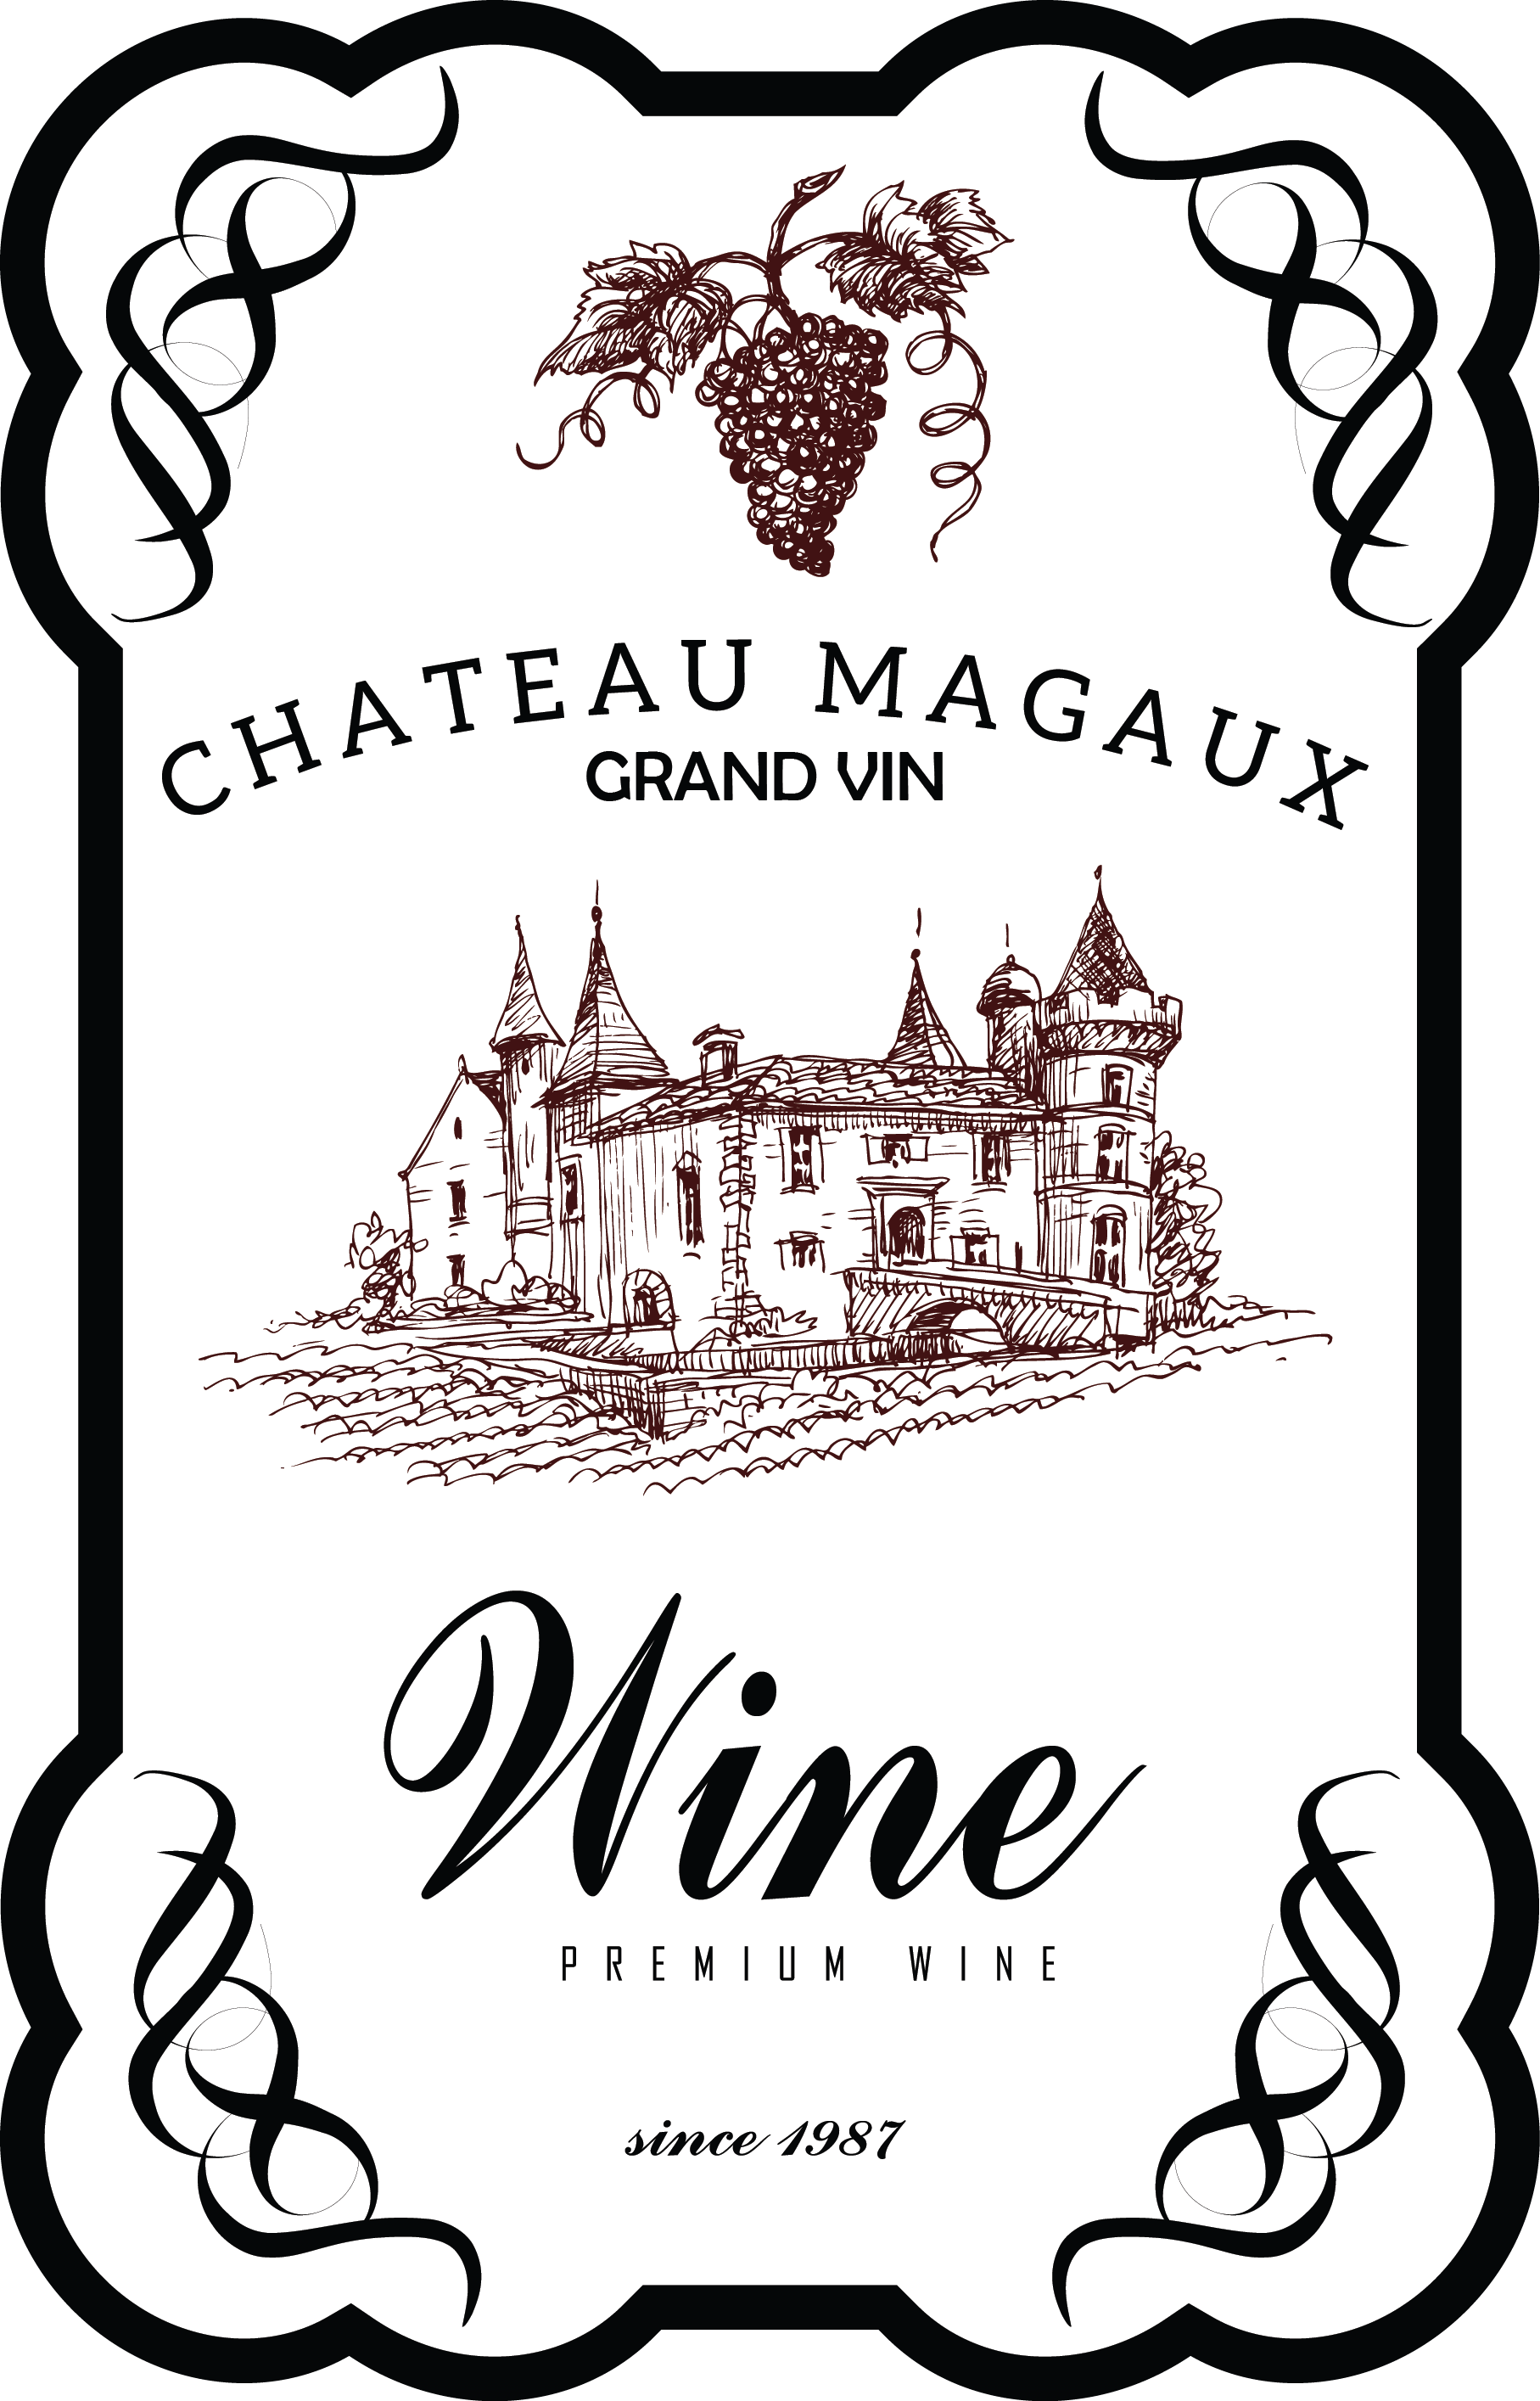 Pin By Angela Flores On Wine Wine Label Template Vintage Wine Label Vintage Wine Bottle Labels